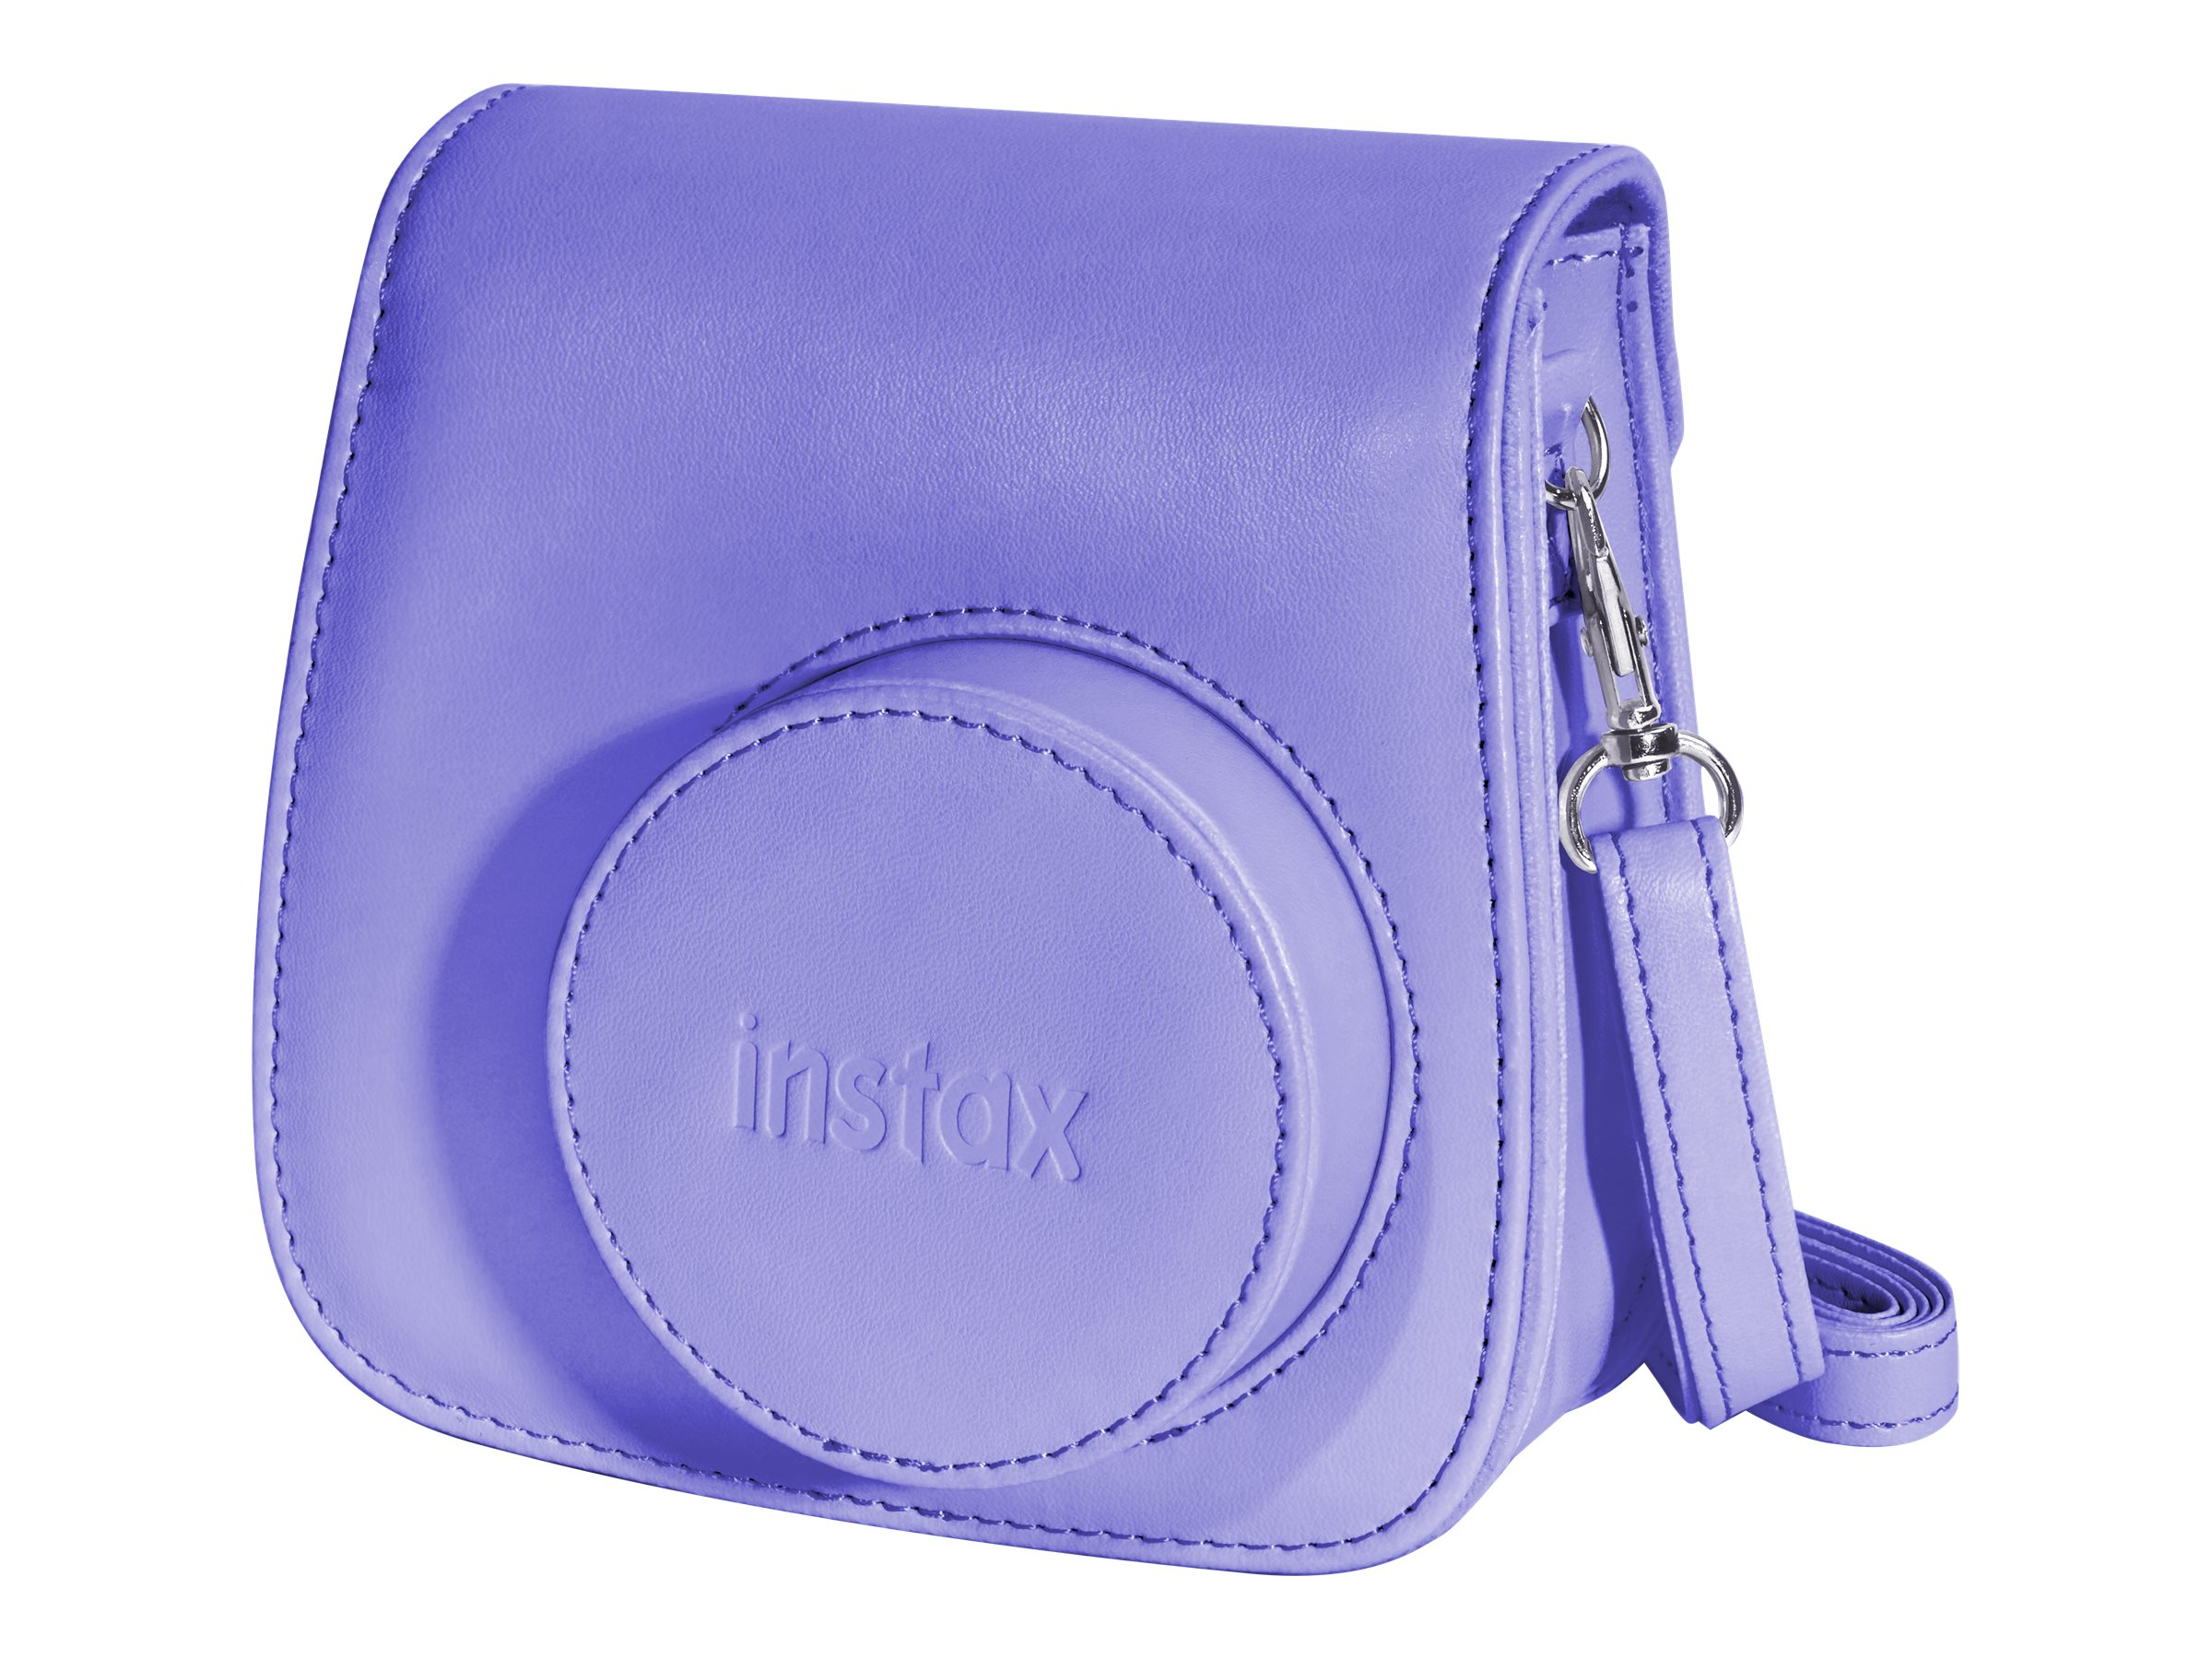 Fujifilm Instax Groovy Camera Case w  Shoulder Strap for Instax Mini 8 Instant Camera, Grape, 600015377, 21730176, Carrying Cases - Camera/Camcorder